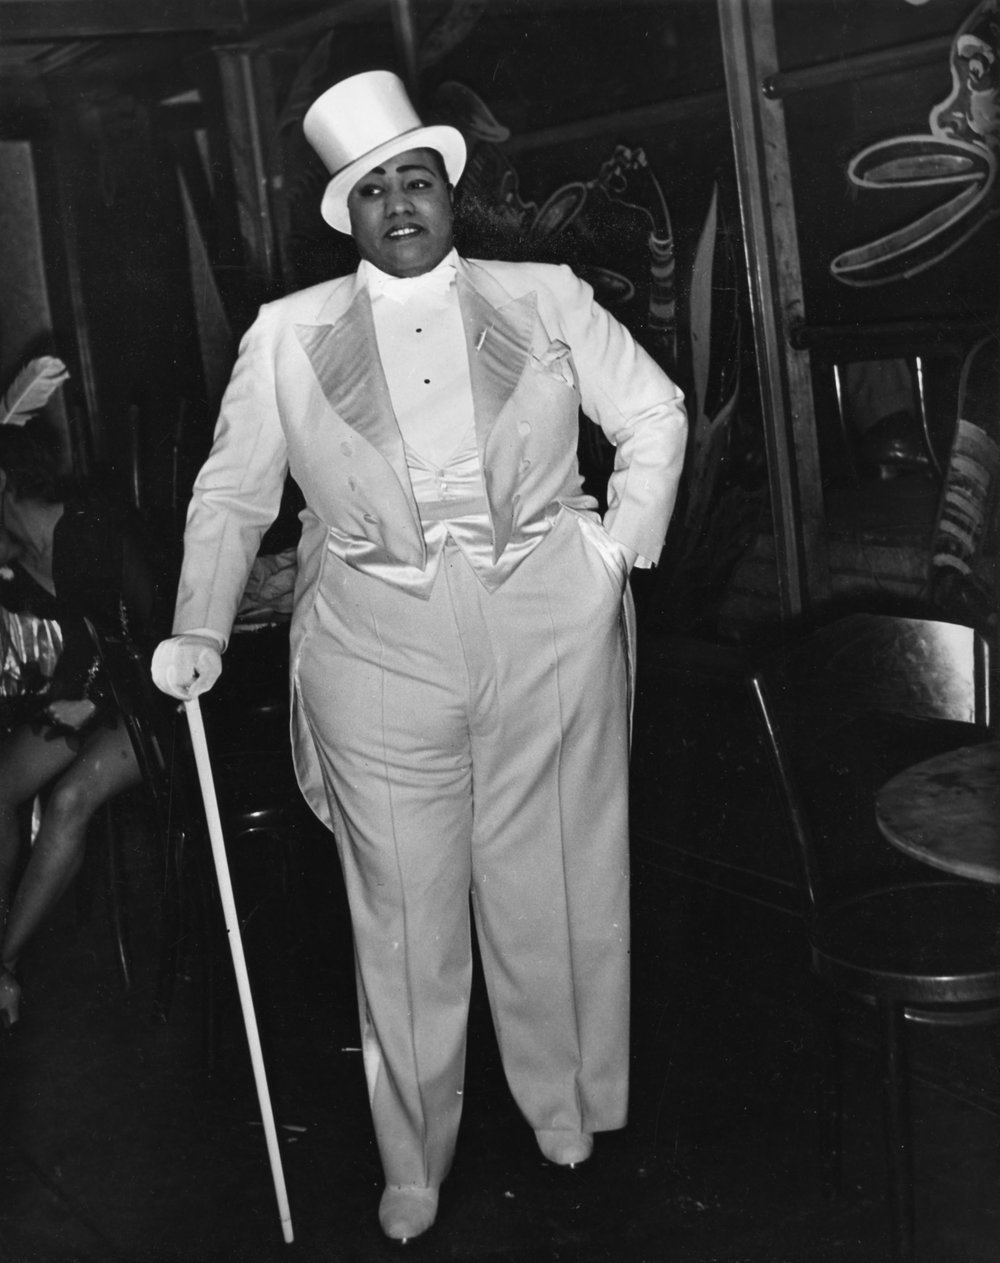 Gladys Bentley at the Ubangi Club in Harlem, photo by Sterling Paige, early 1930s. Courtesy of the Visual Studies Workshop, Rochester, NY